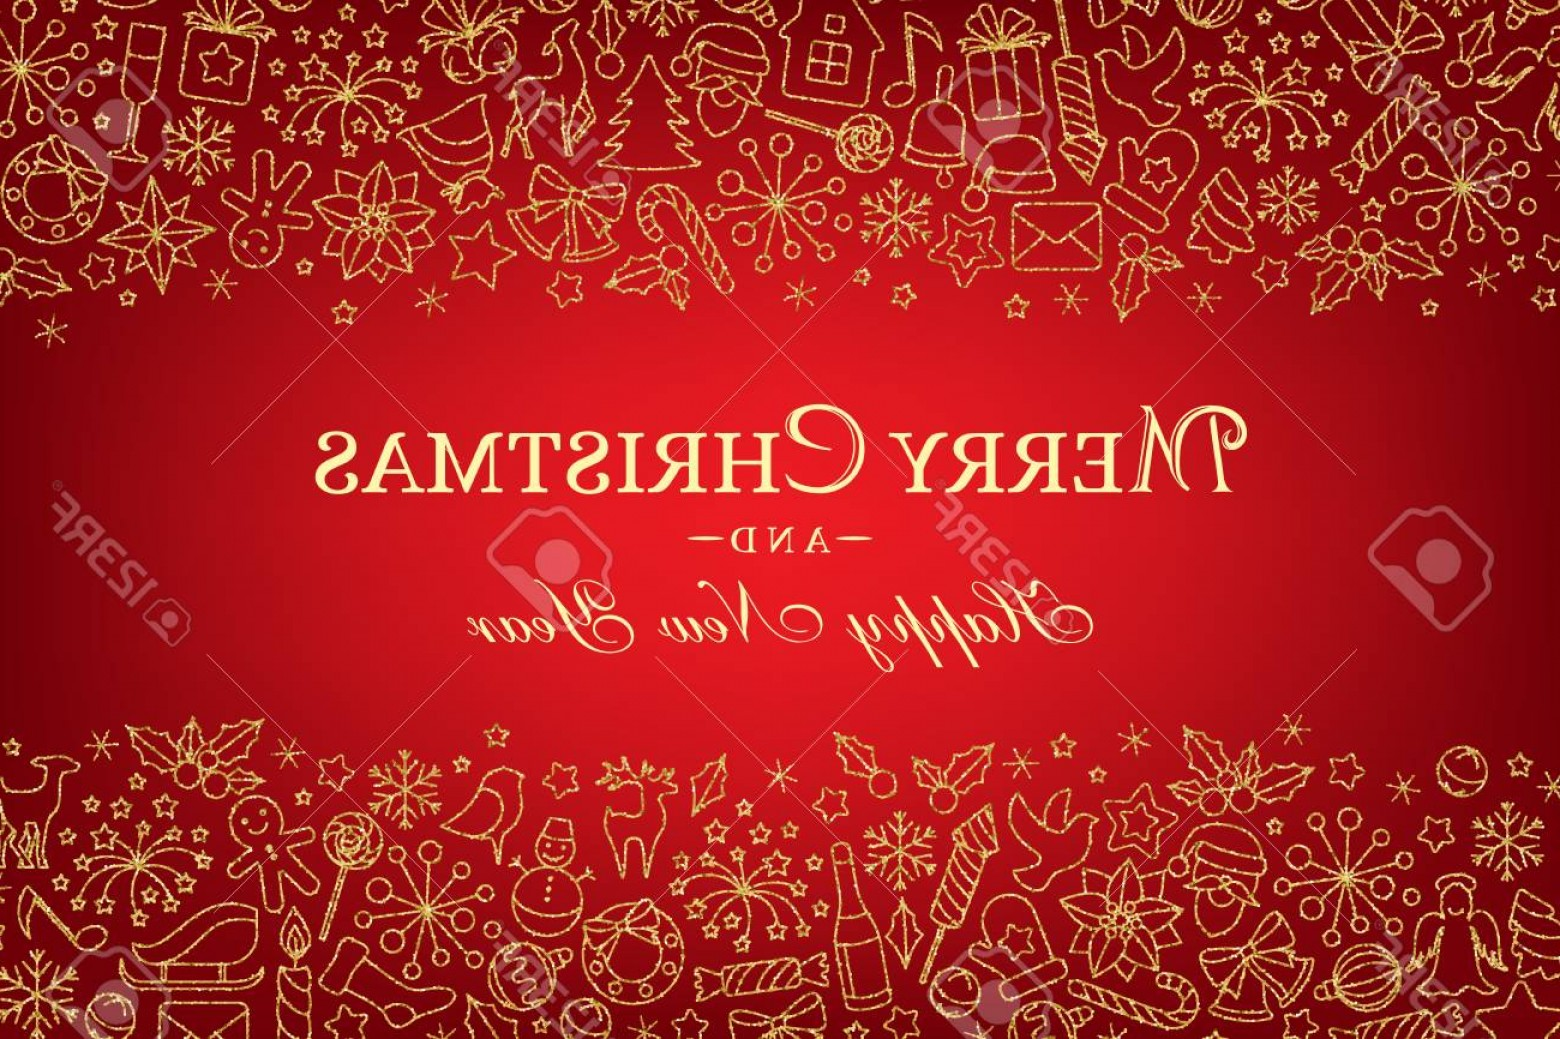 Christmas Horizontal Vector: Photostock Vector Christmas Horizontal Banner With Borders From Line Art Decorations Holiday Red Background With Linea